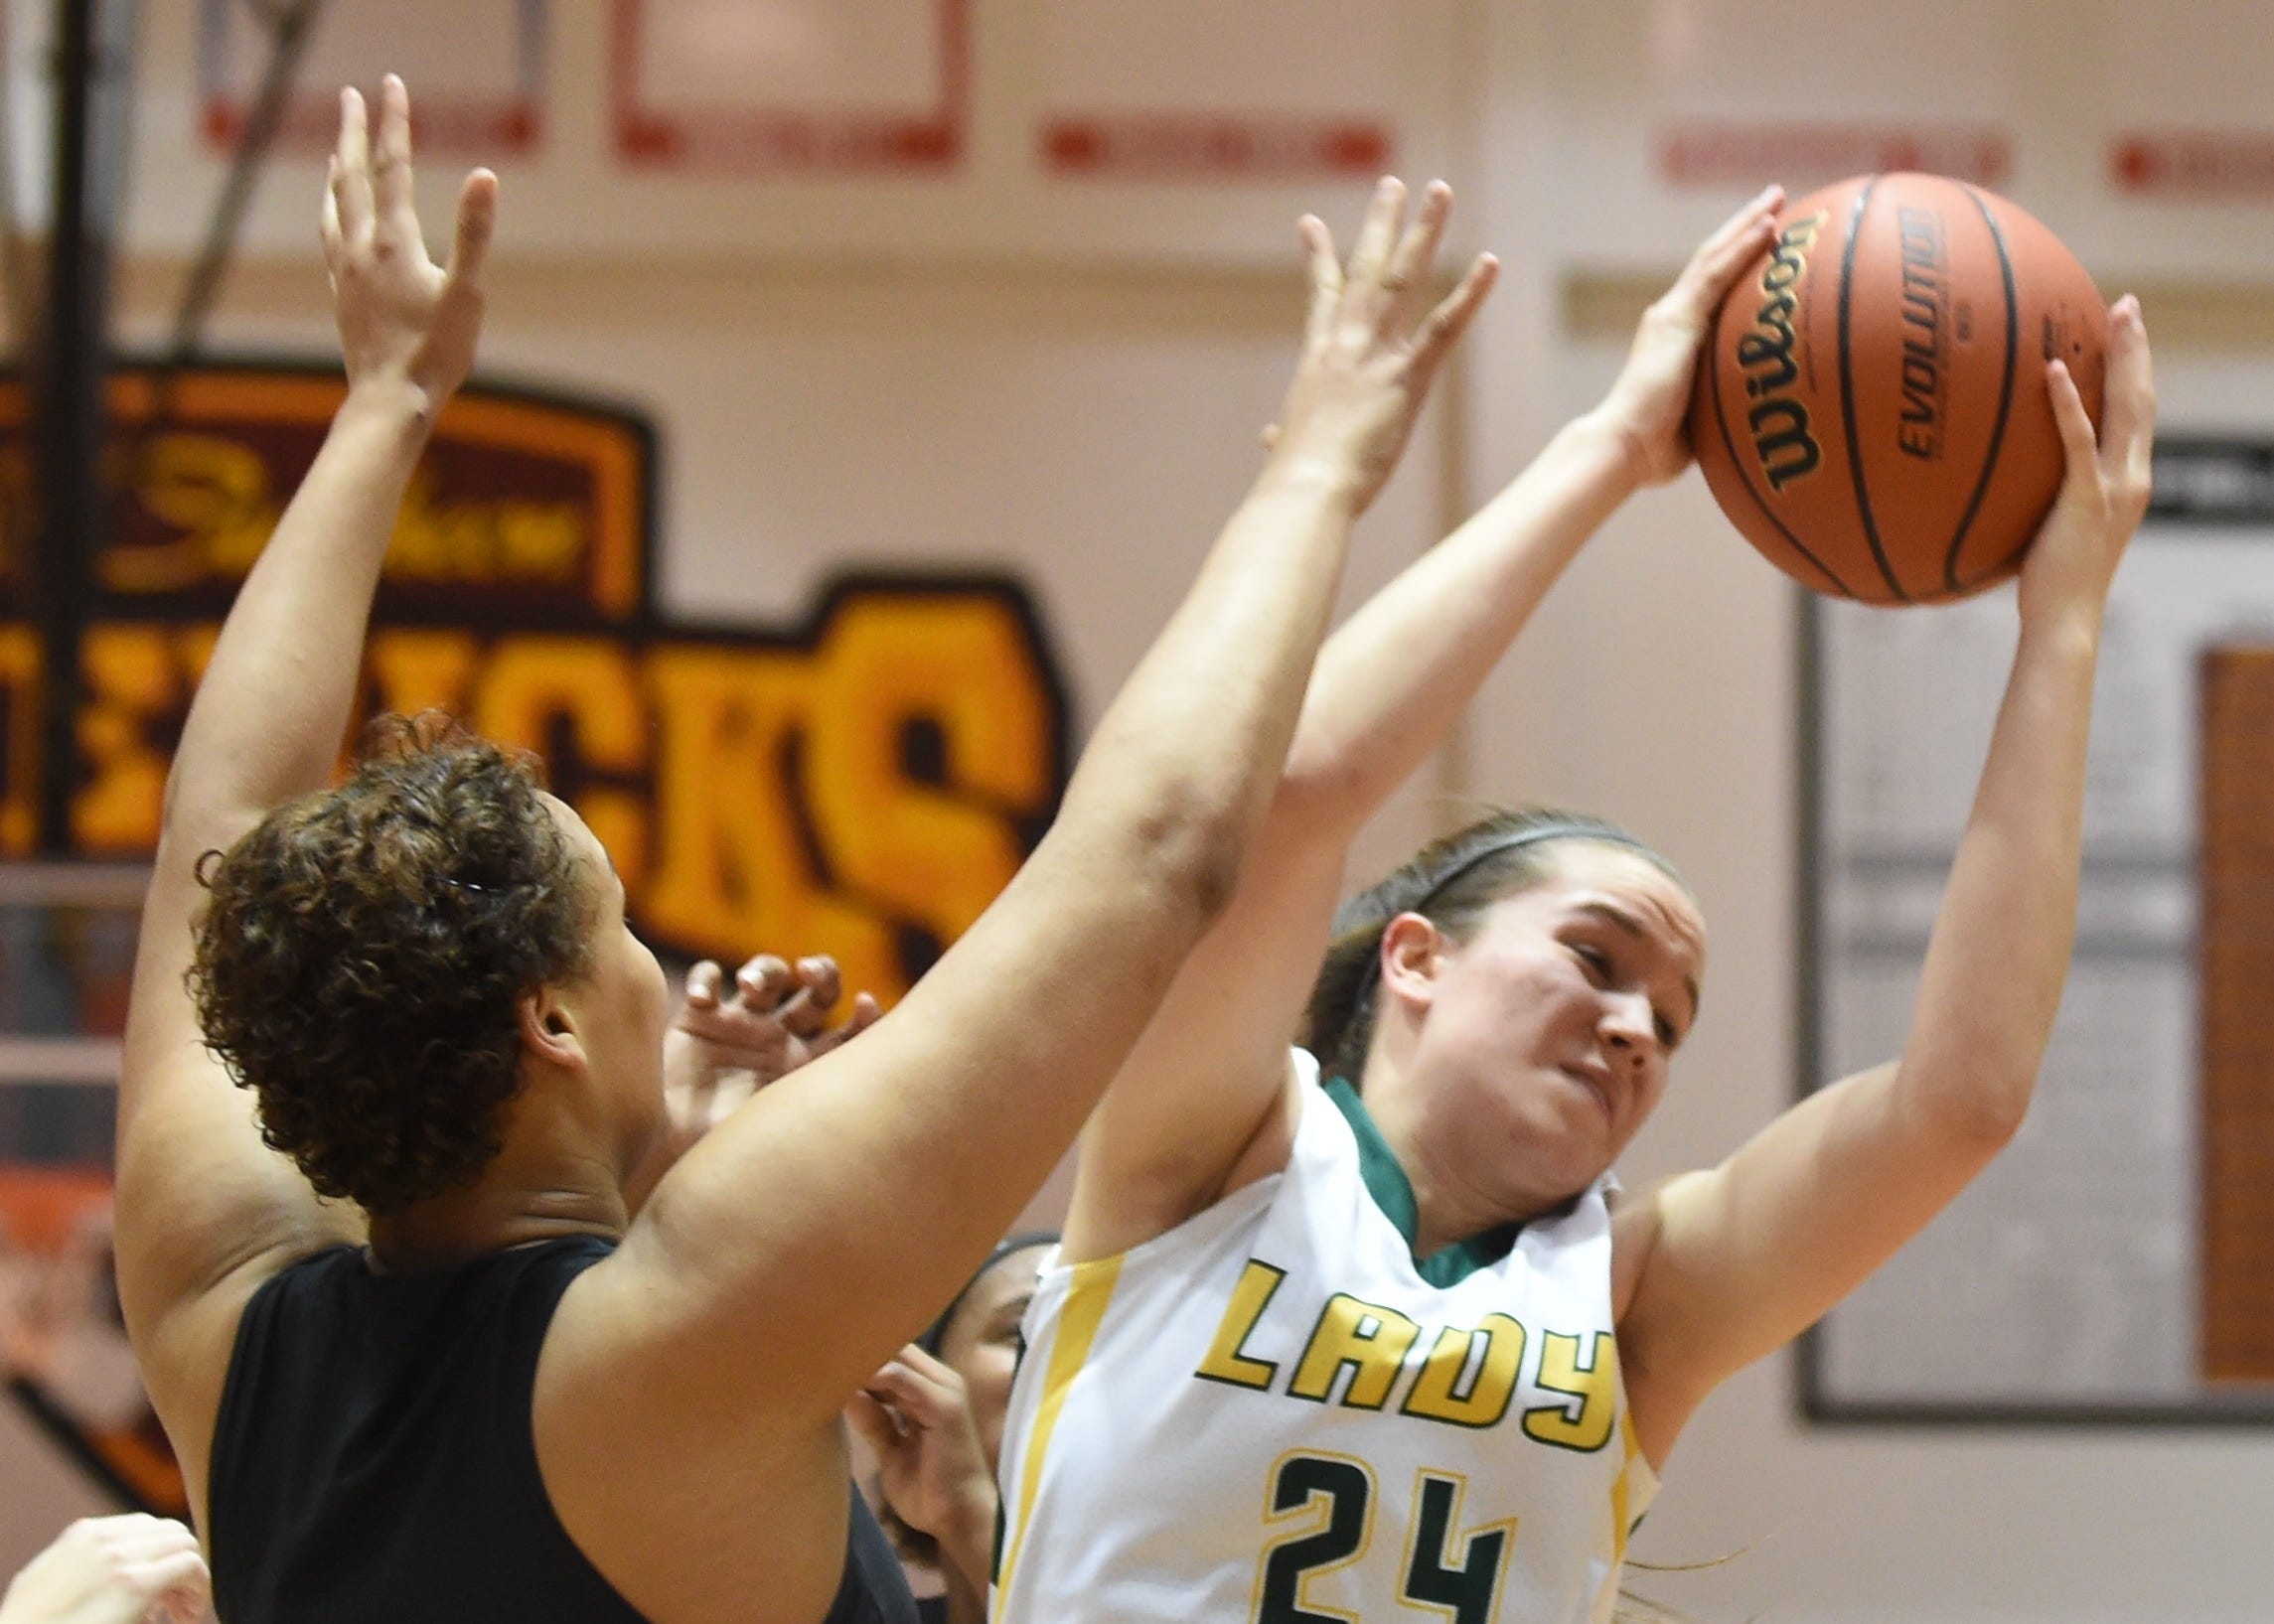 Audrey Strawsma's double-double helped Benton Central win the fourth girls basketball semistate title in program history.